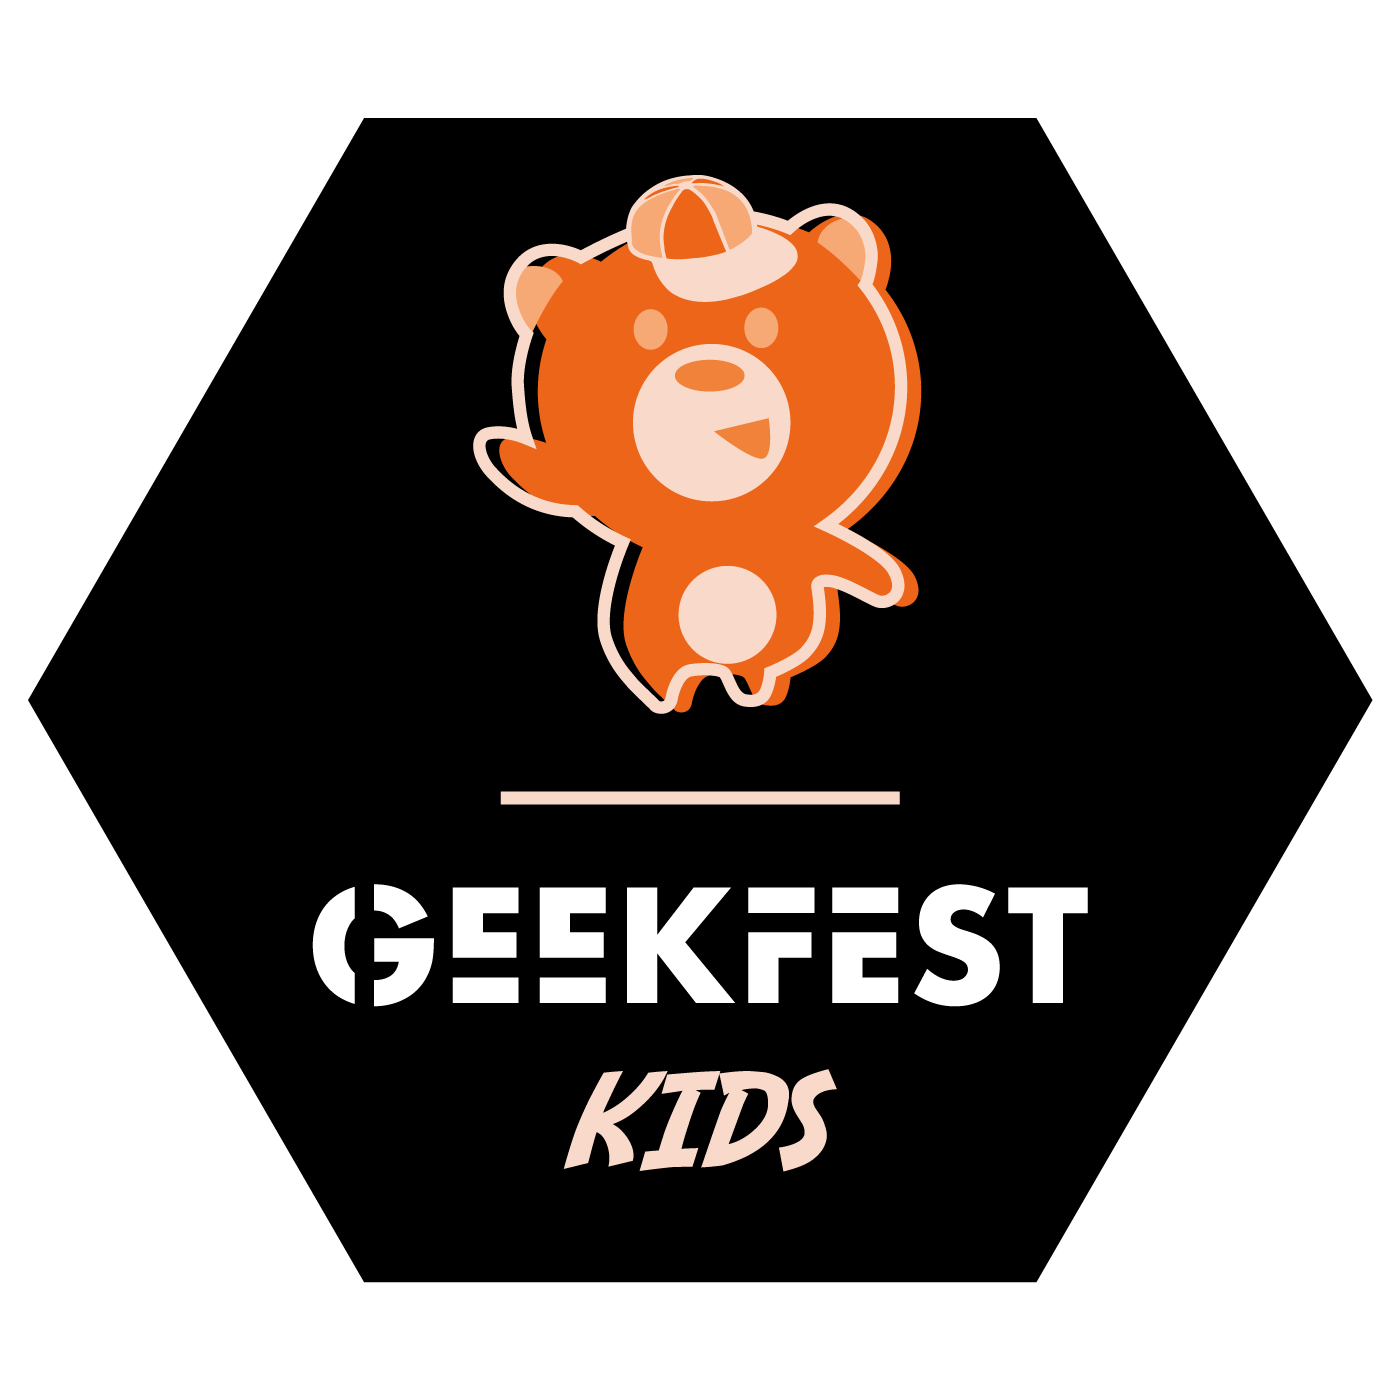 bordeaux-geekfest-label-kids